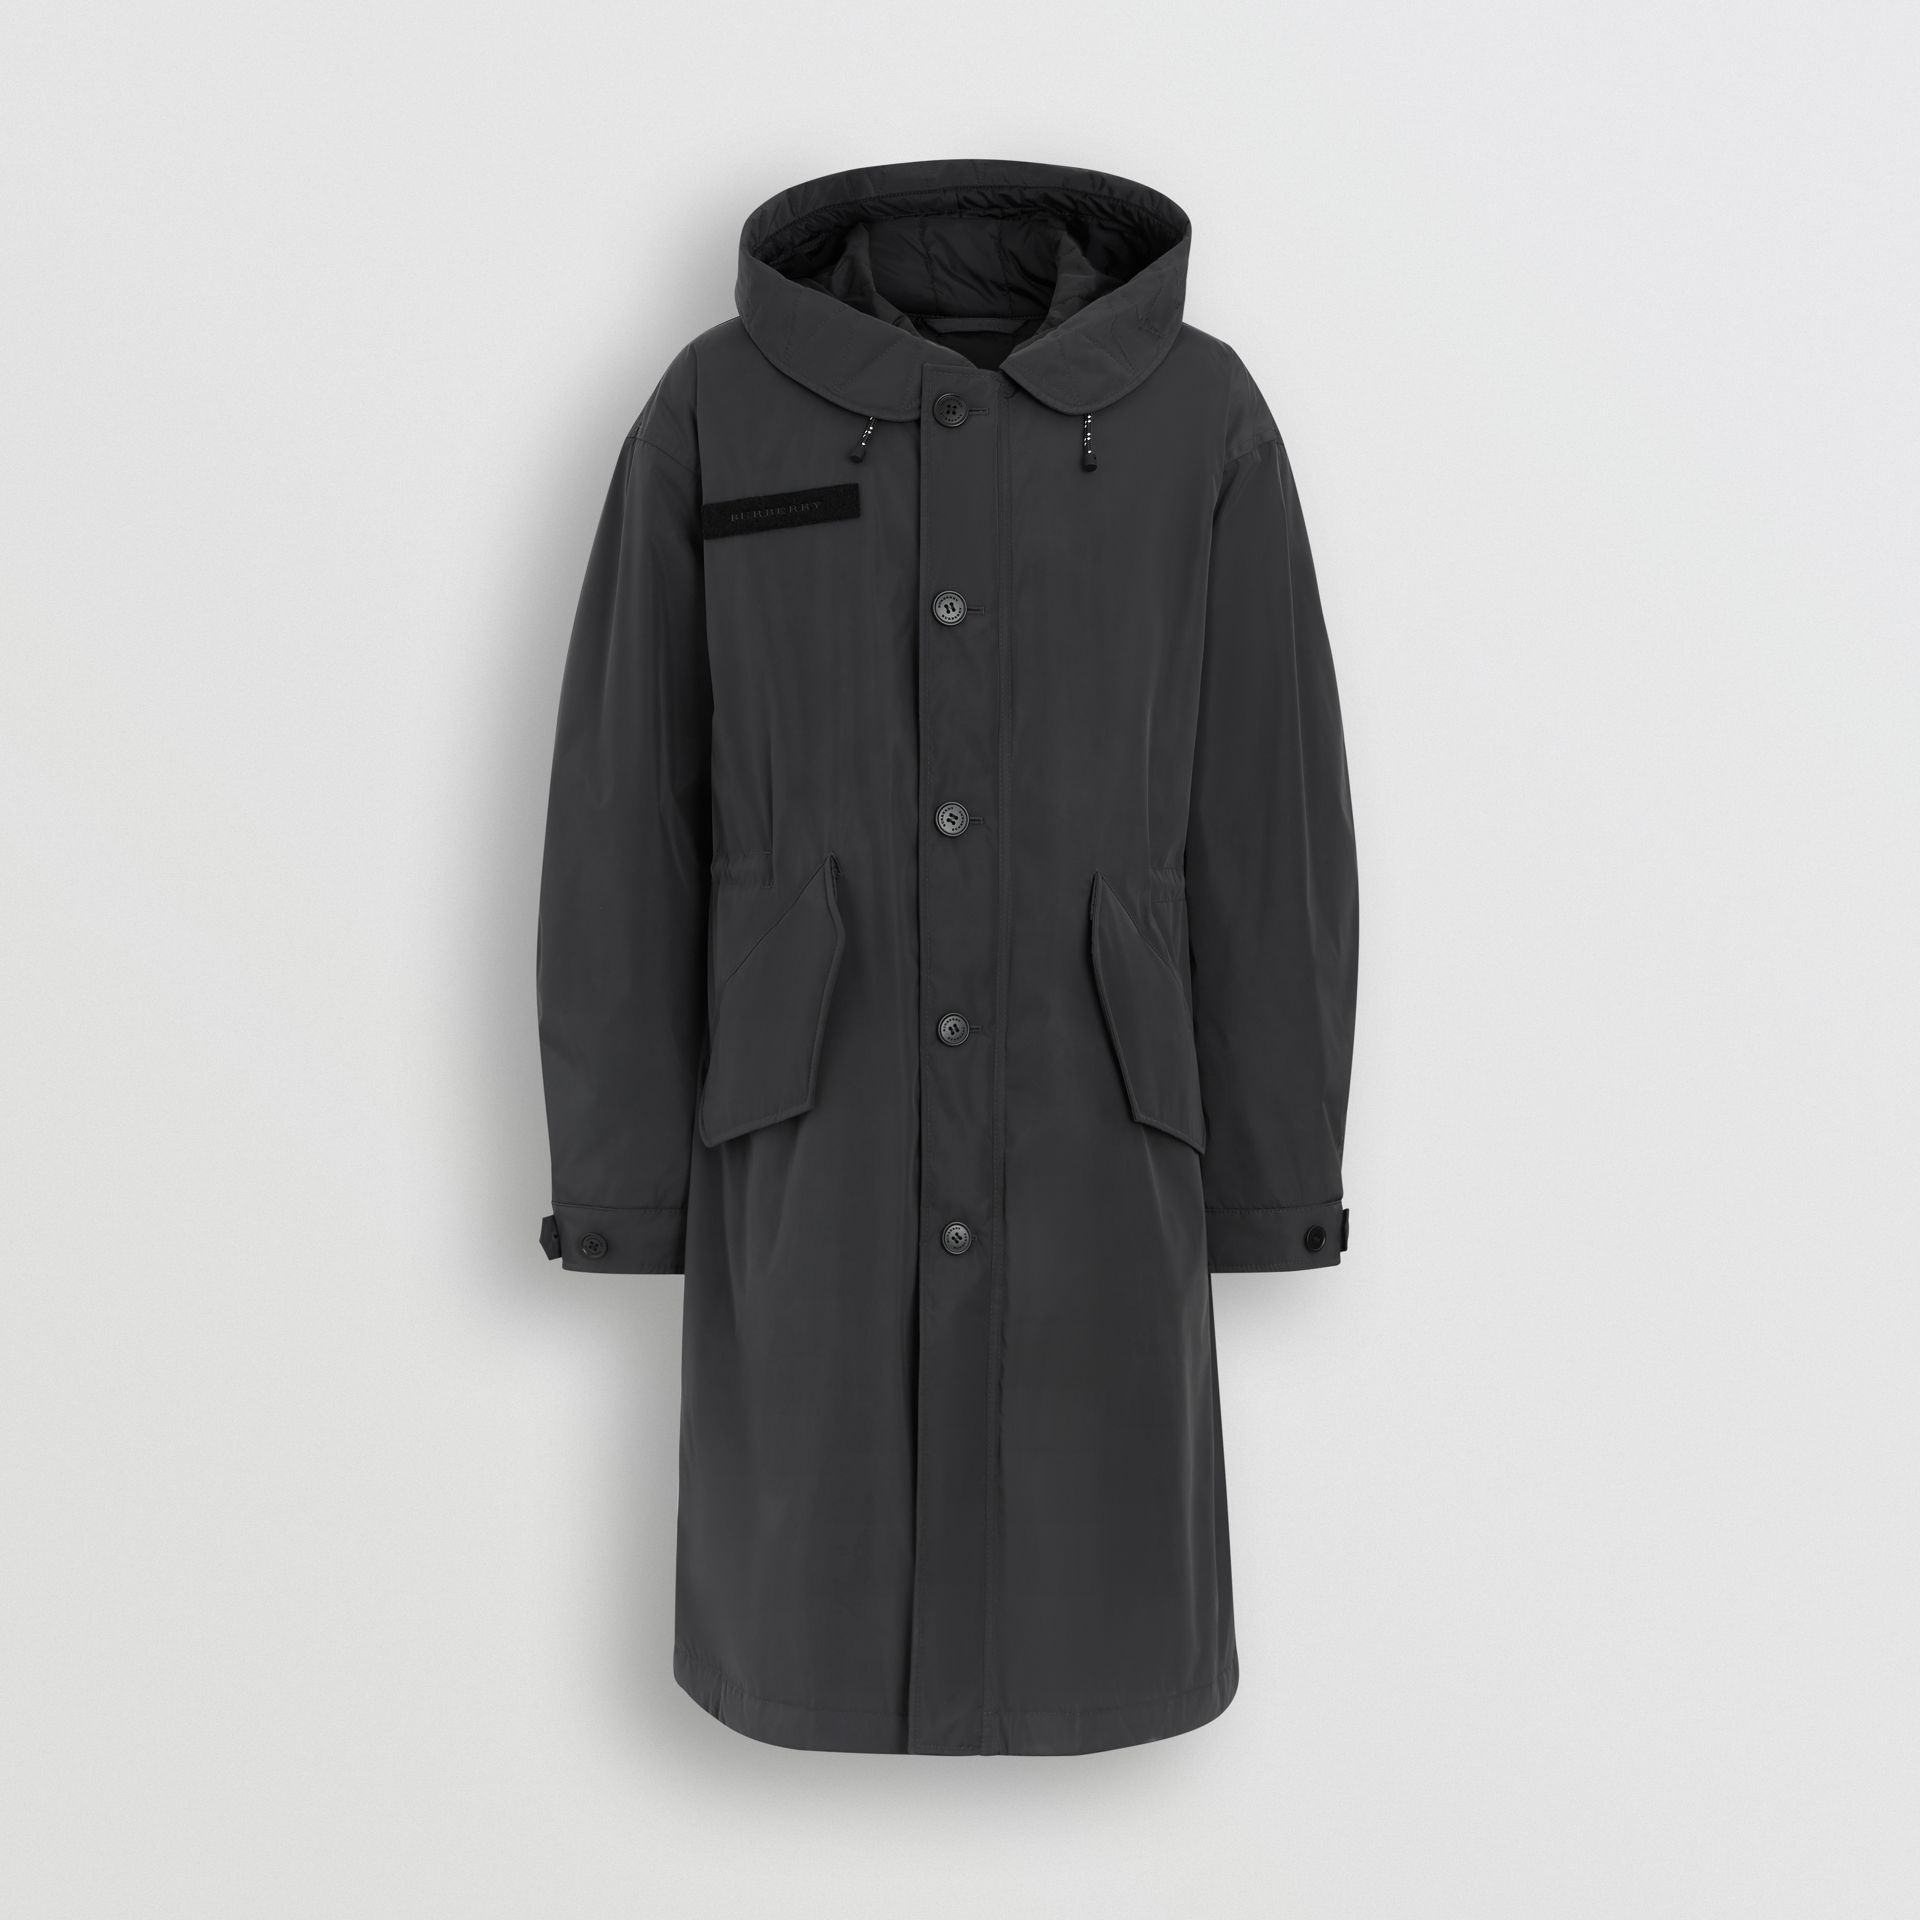 Burberry Dark Charcoal Quilt-lined Technical Nylon Parka